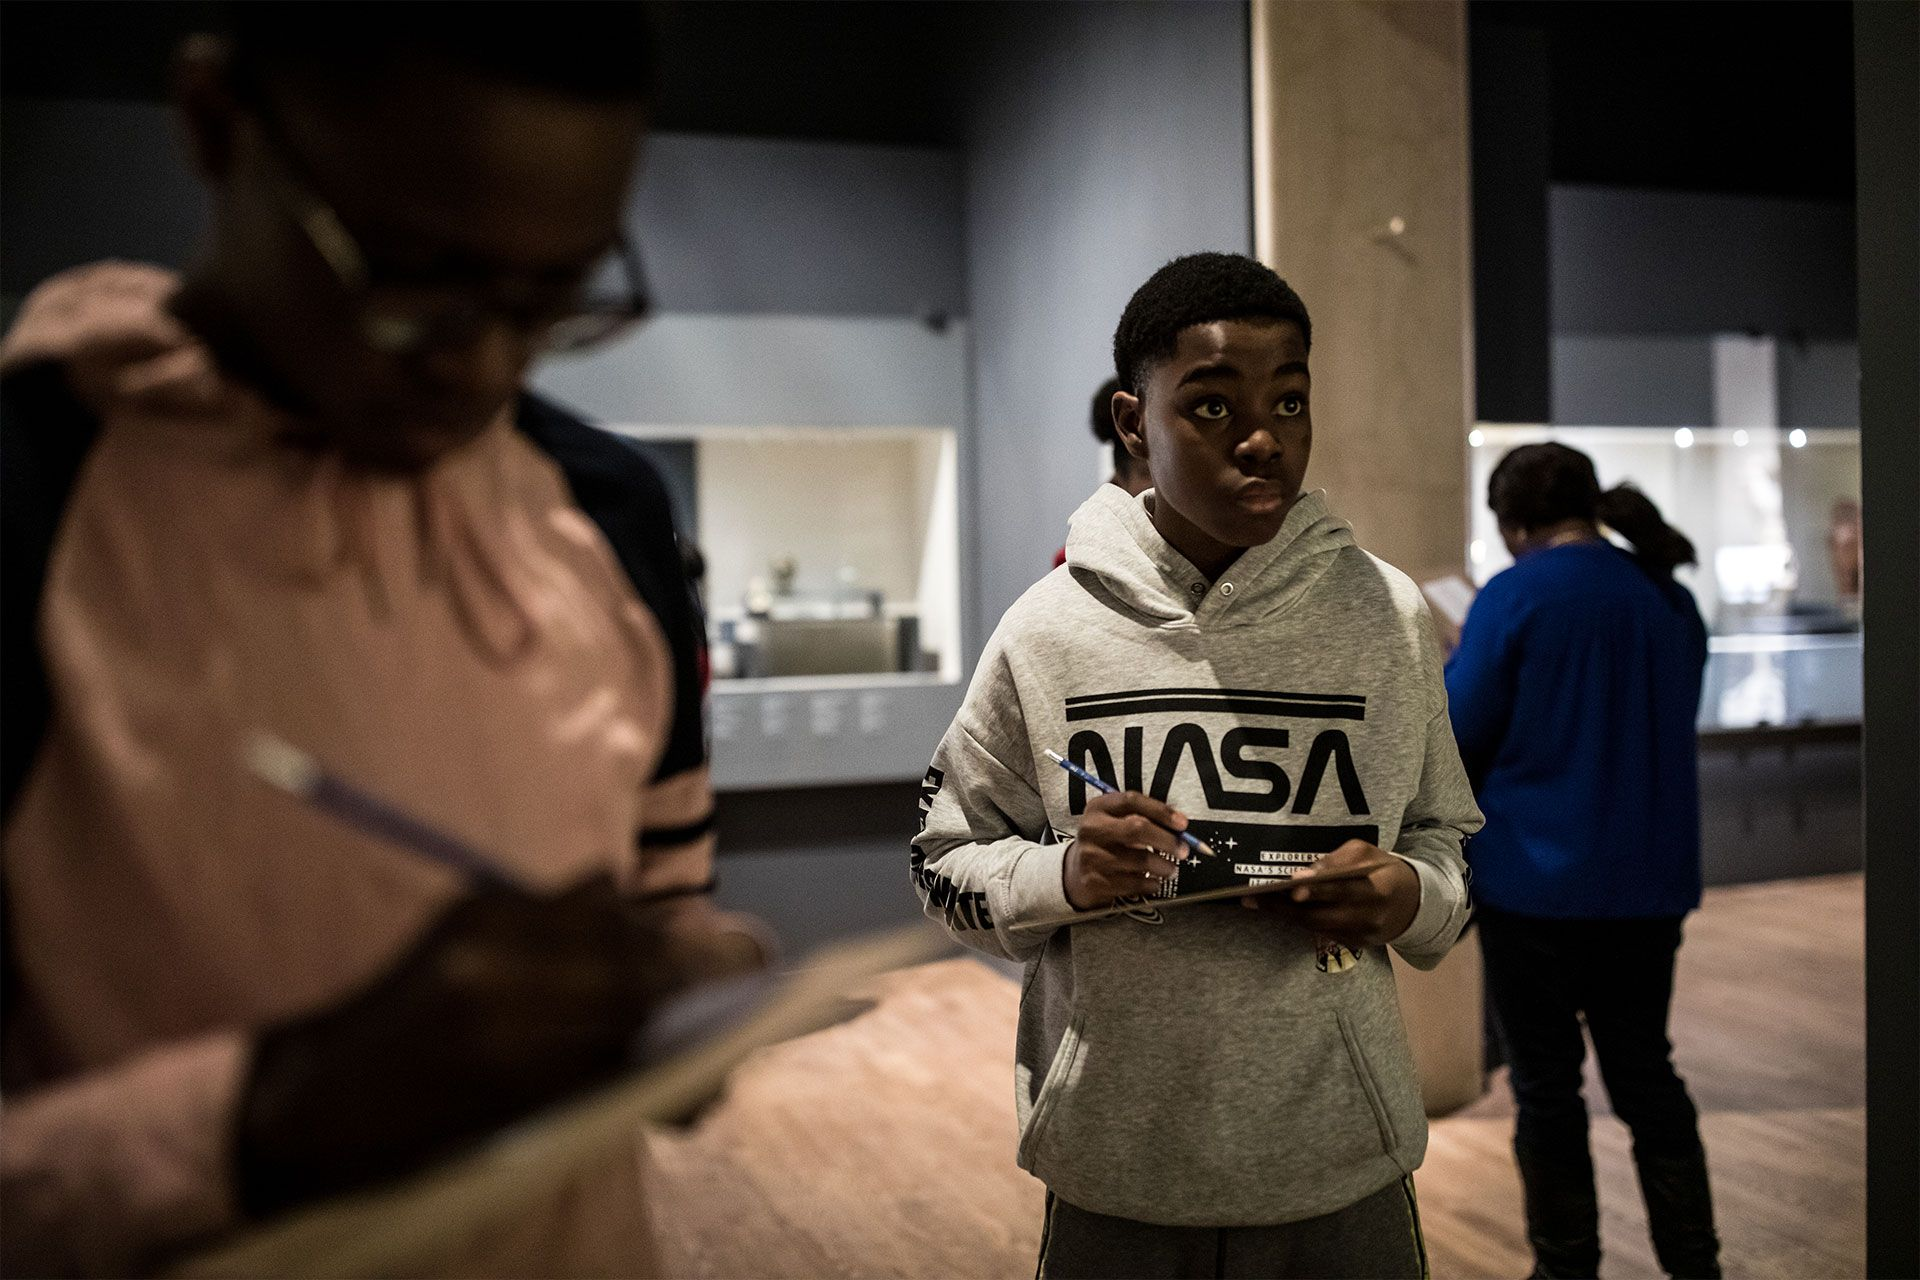 A student takes notes while visiting a museum collection.